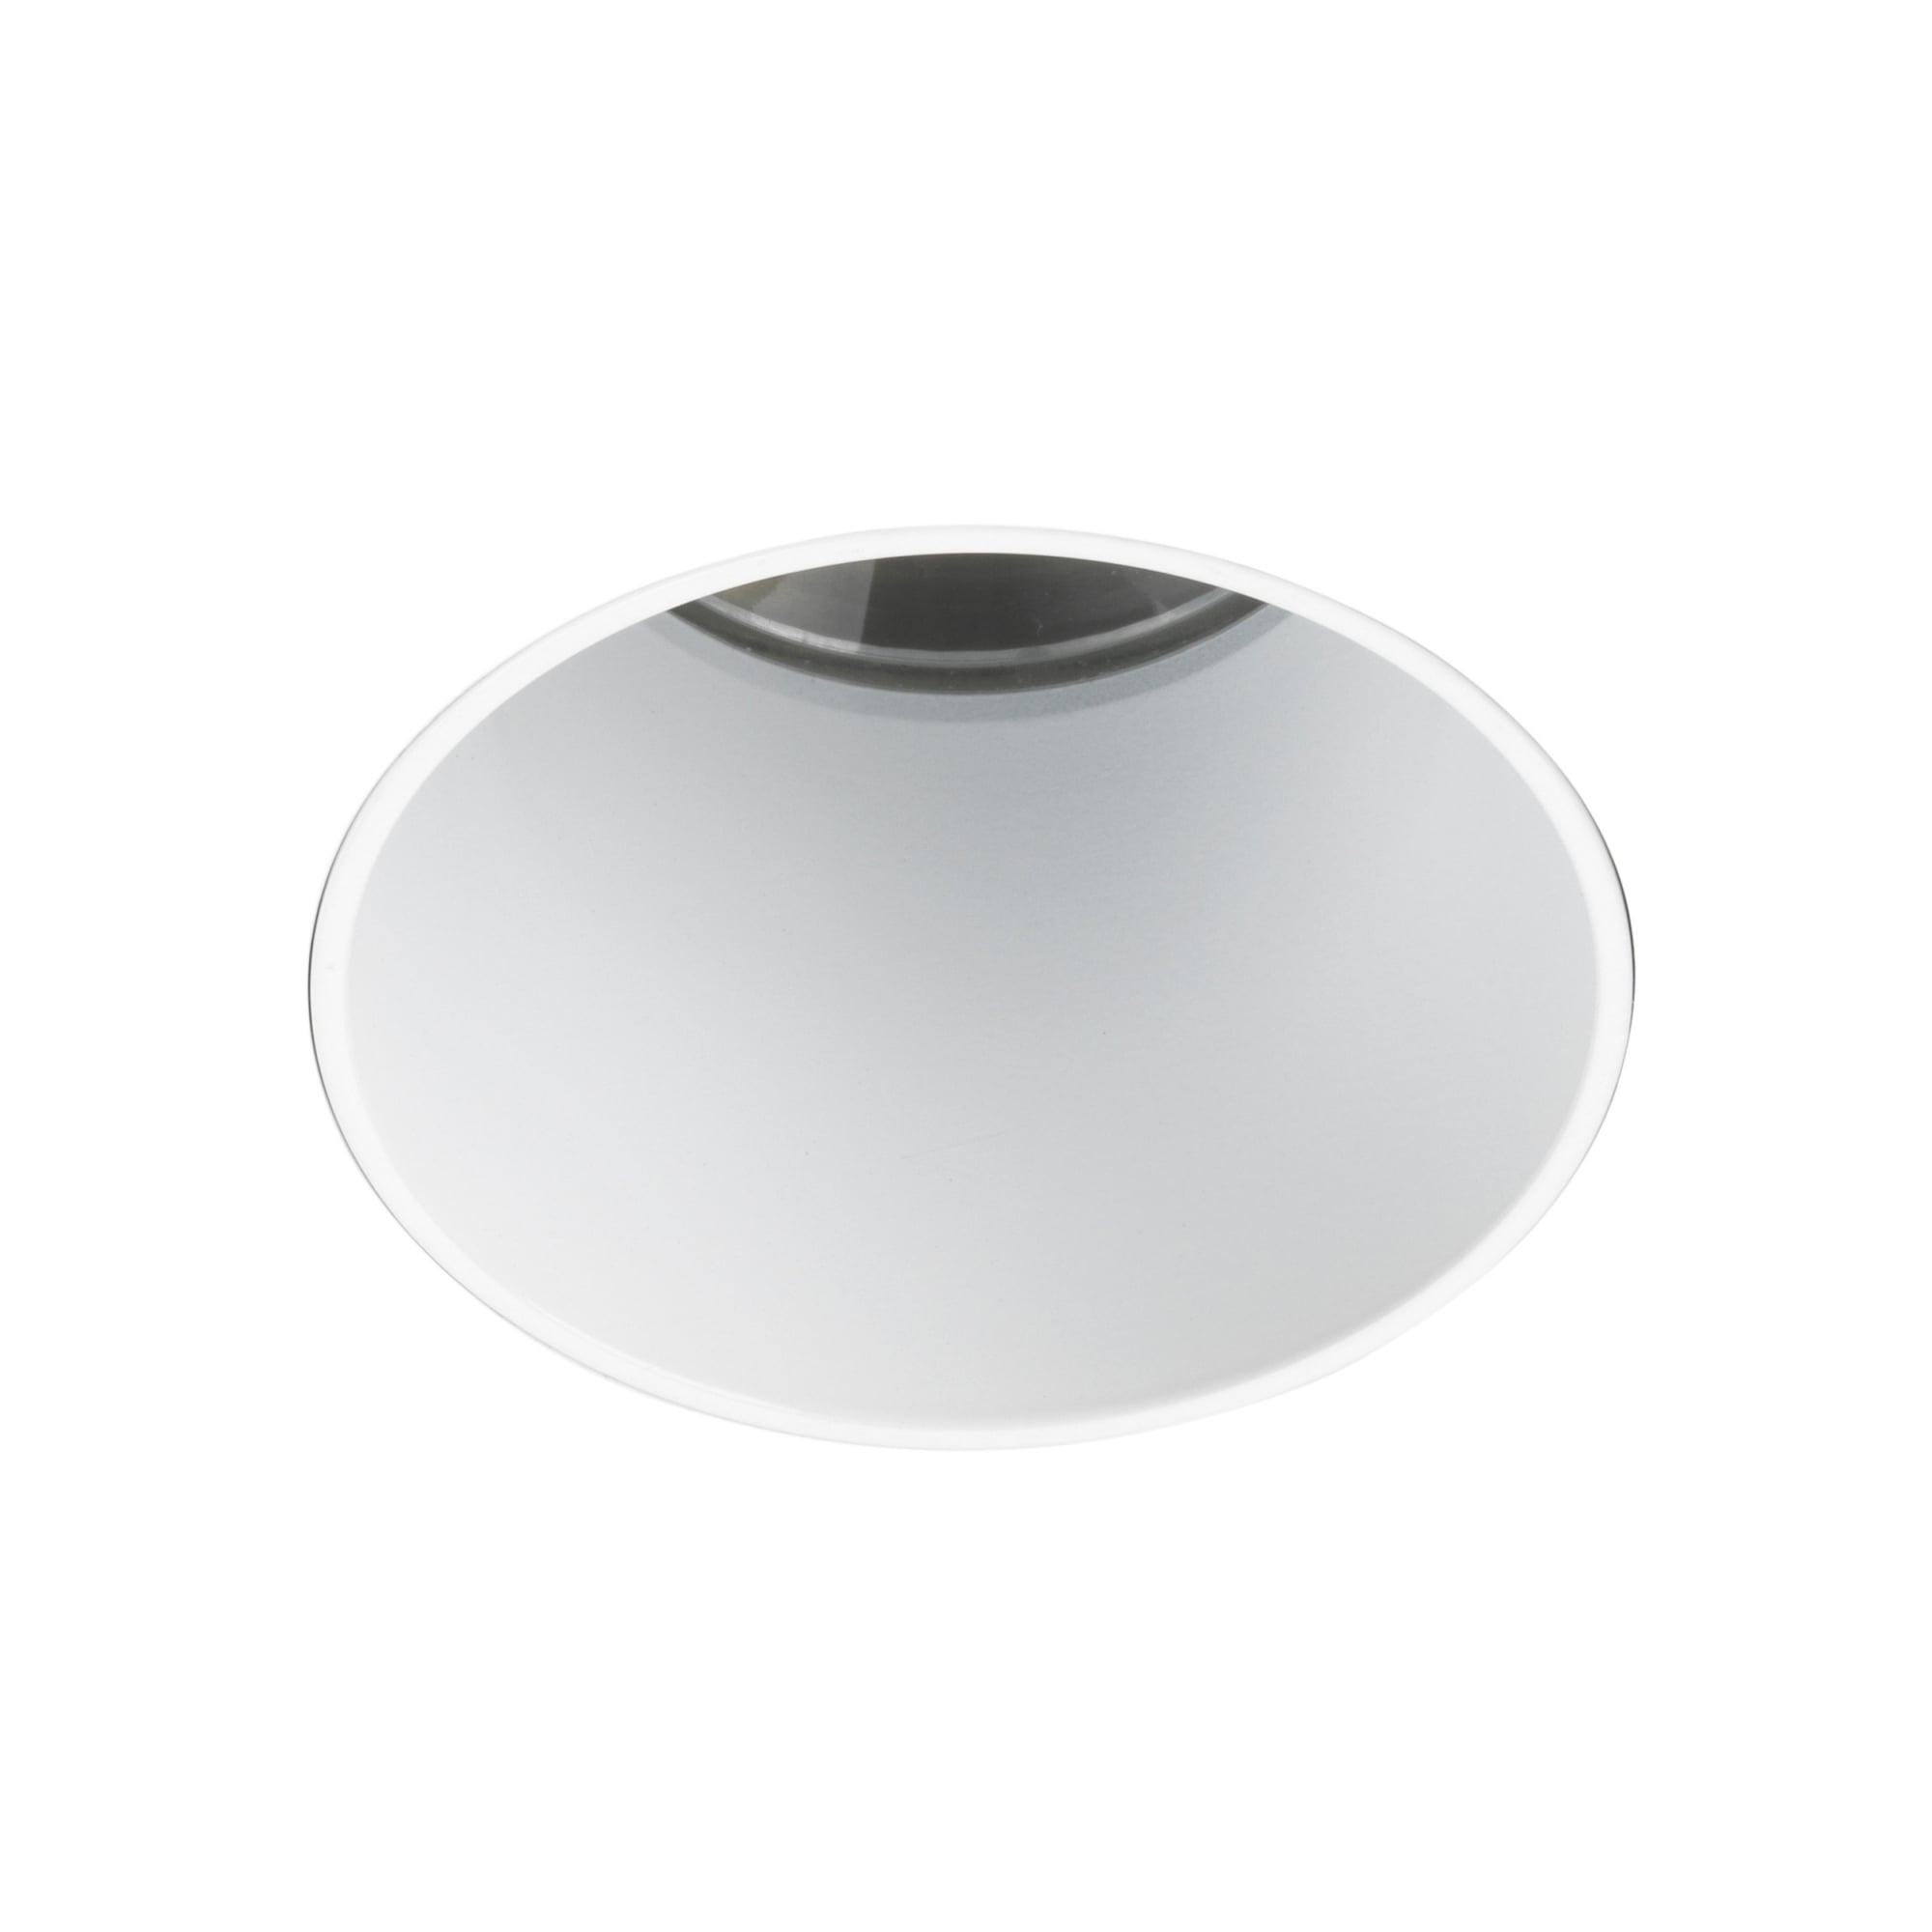 Astro Lighting 5787 Void Round 55 Ip65 Firerated Recessed Light